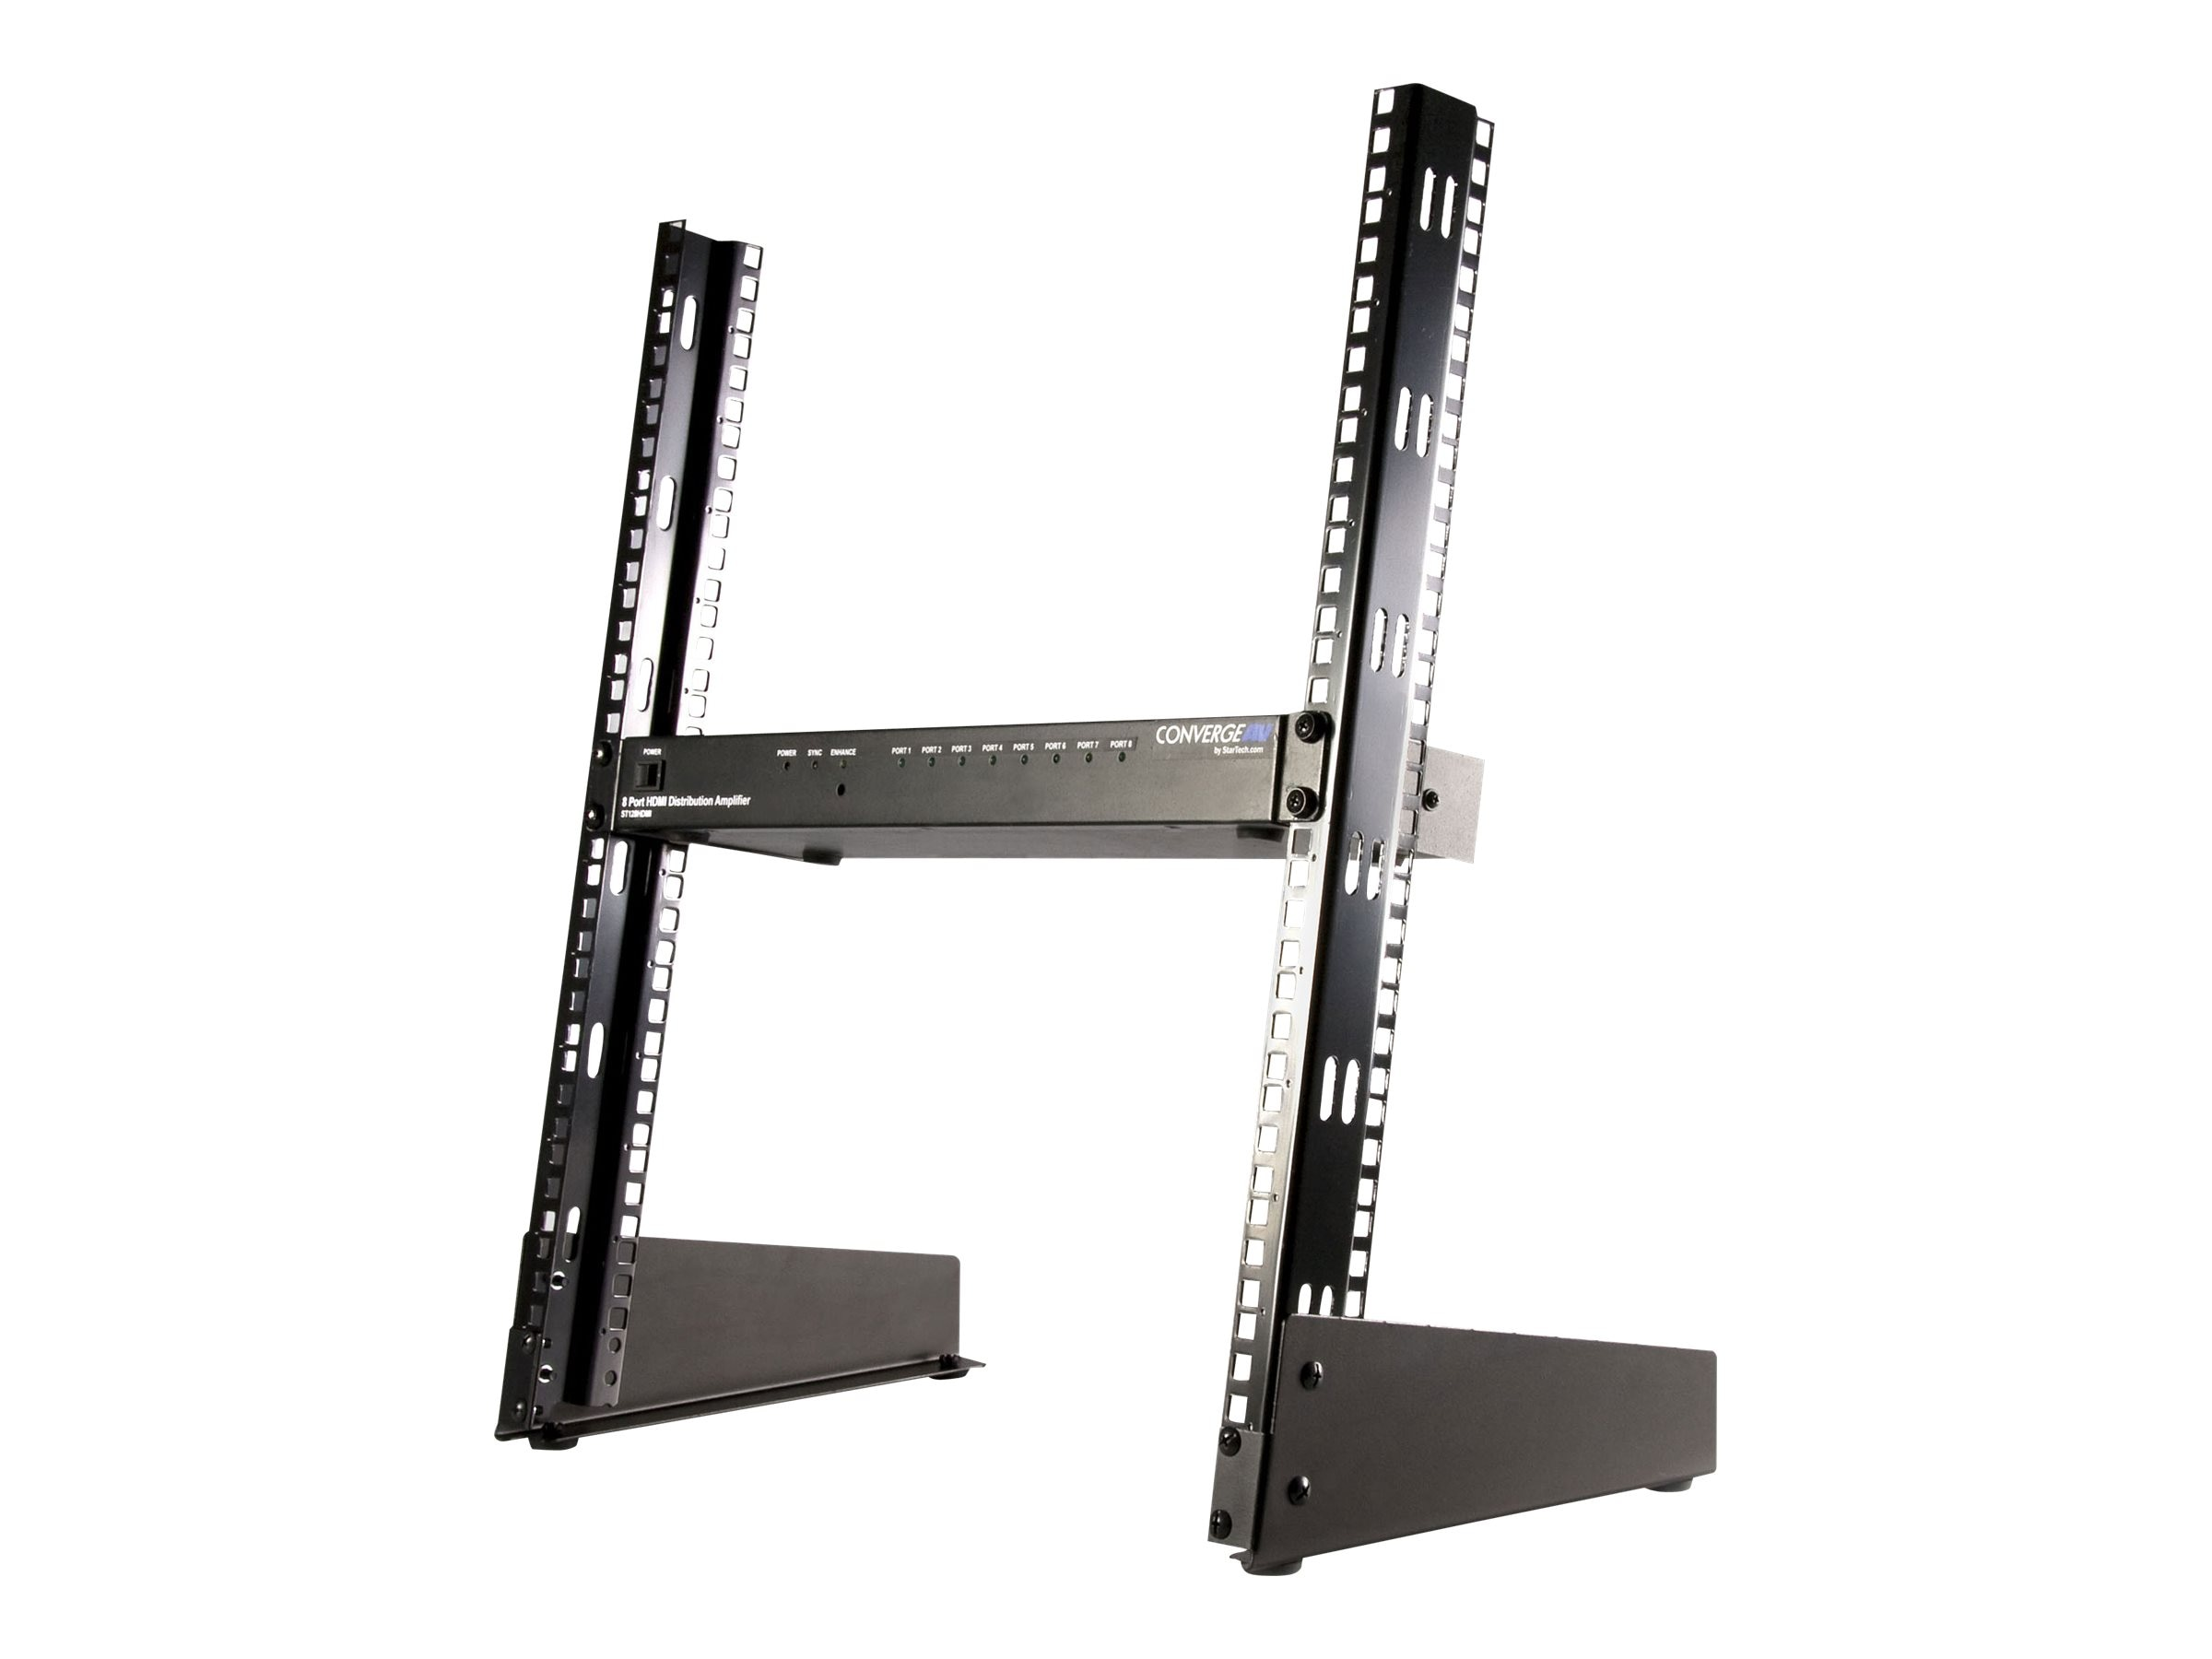 StarTech.com 19in Desktop Open Frame 2-Post Rack, 12U